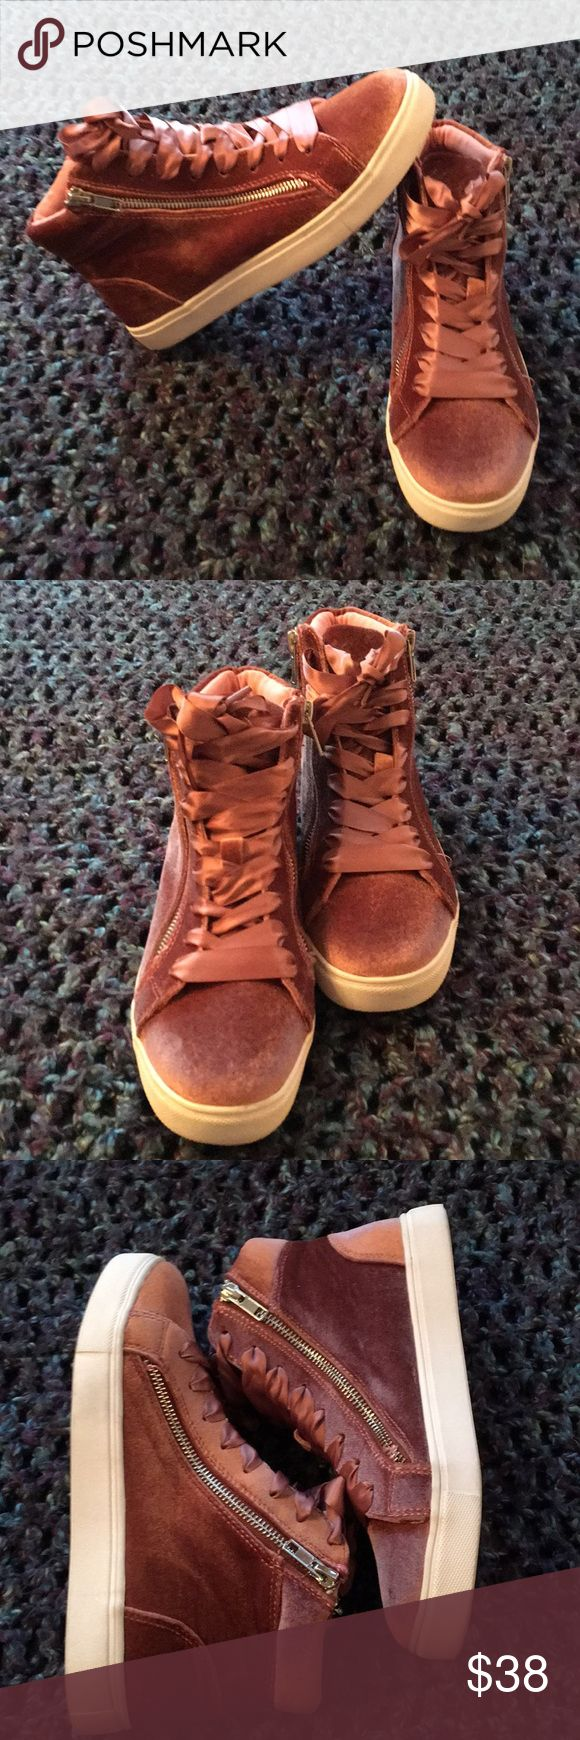 Madden Girl Faux Velvet Hightop Ribbon Lace Sneaks These are NWT but I no longer have the box.  They are super cute Zip-up side, ribbon laced sneakers.  Size 7 1/2 Madden Girl Shoes Sneakers